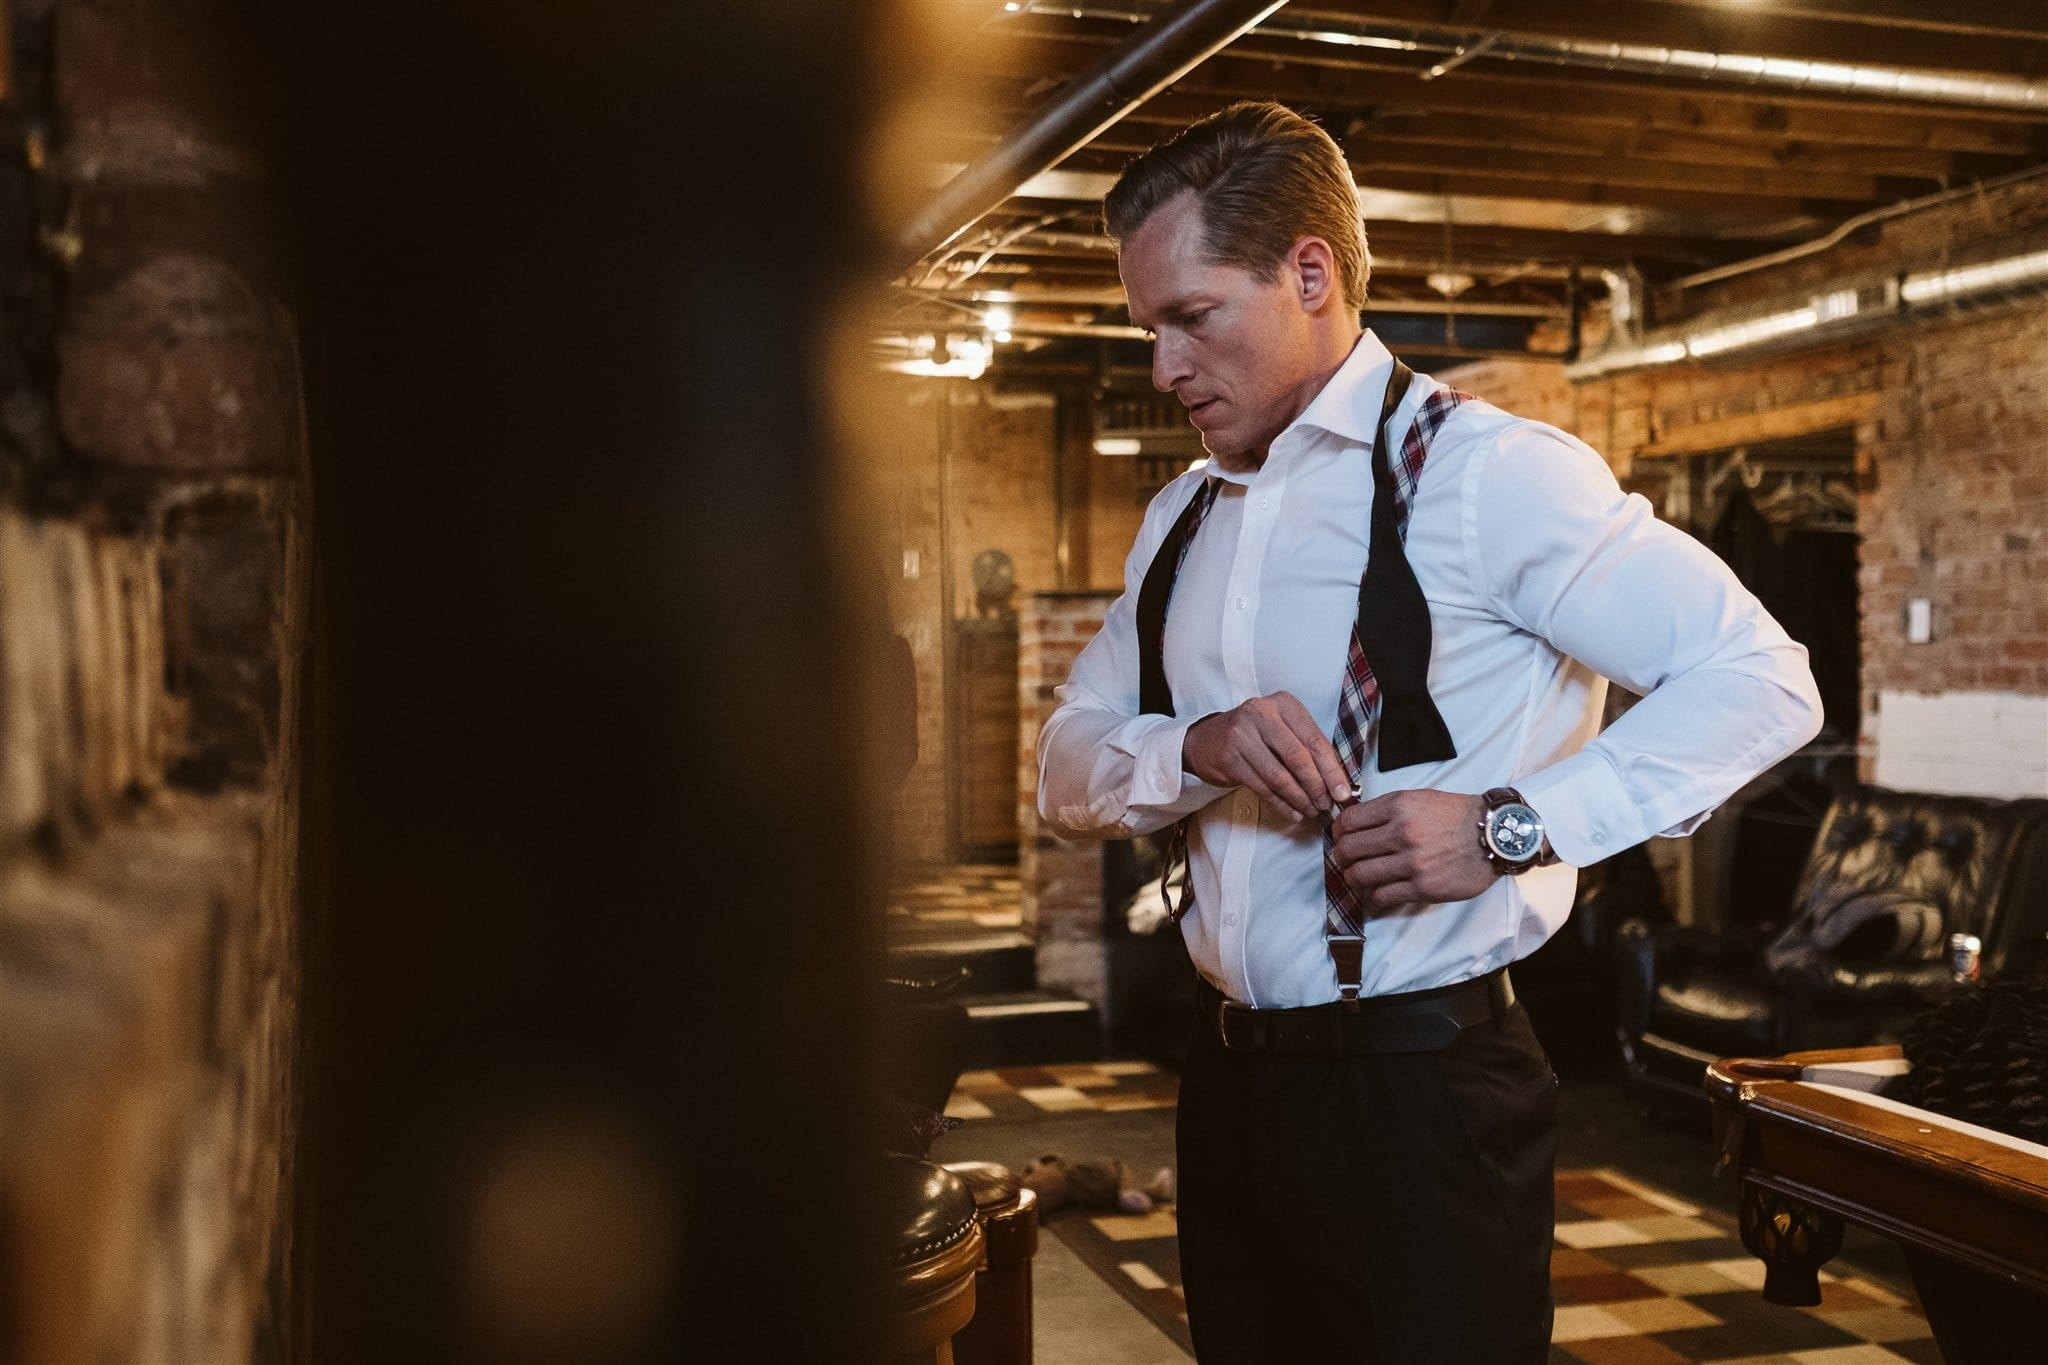 Groom putting on suspenders in the basement at Manor House